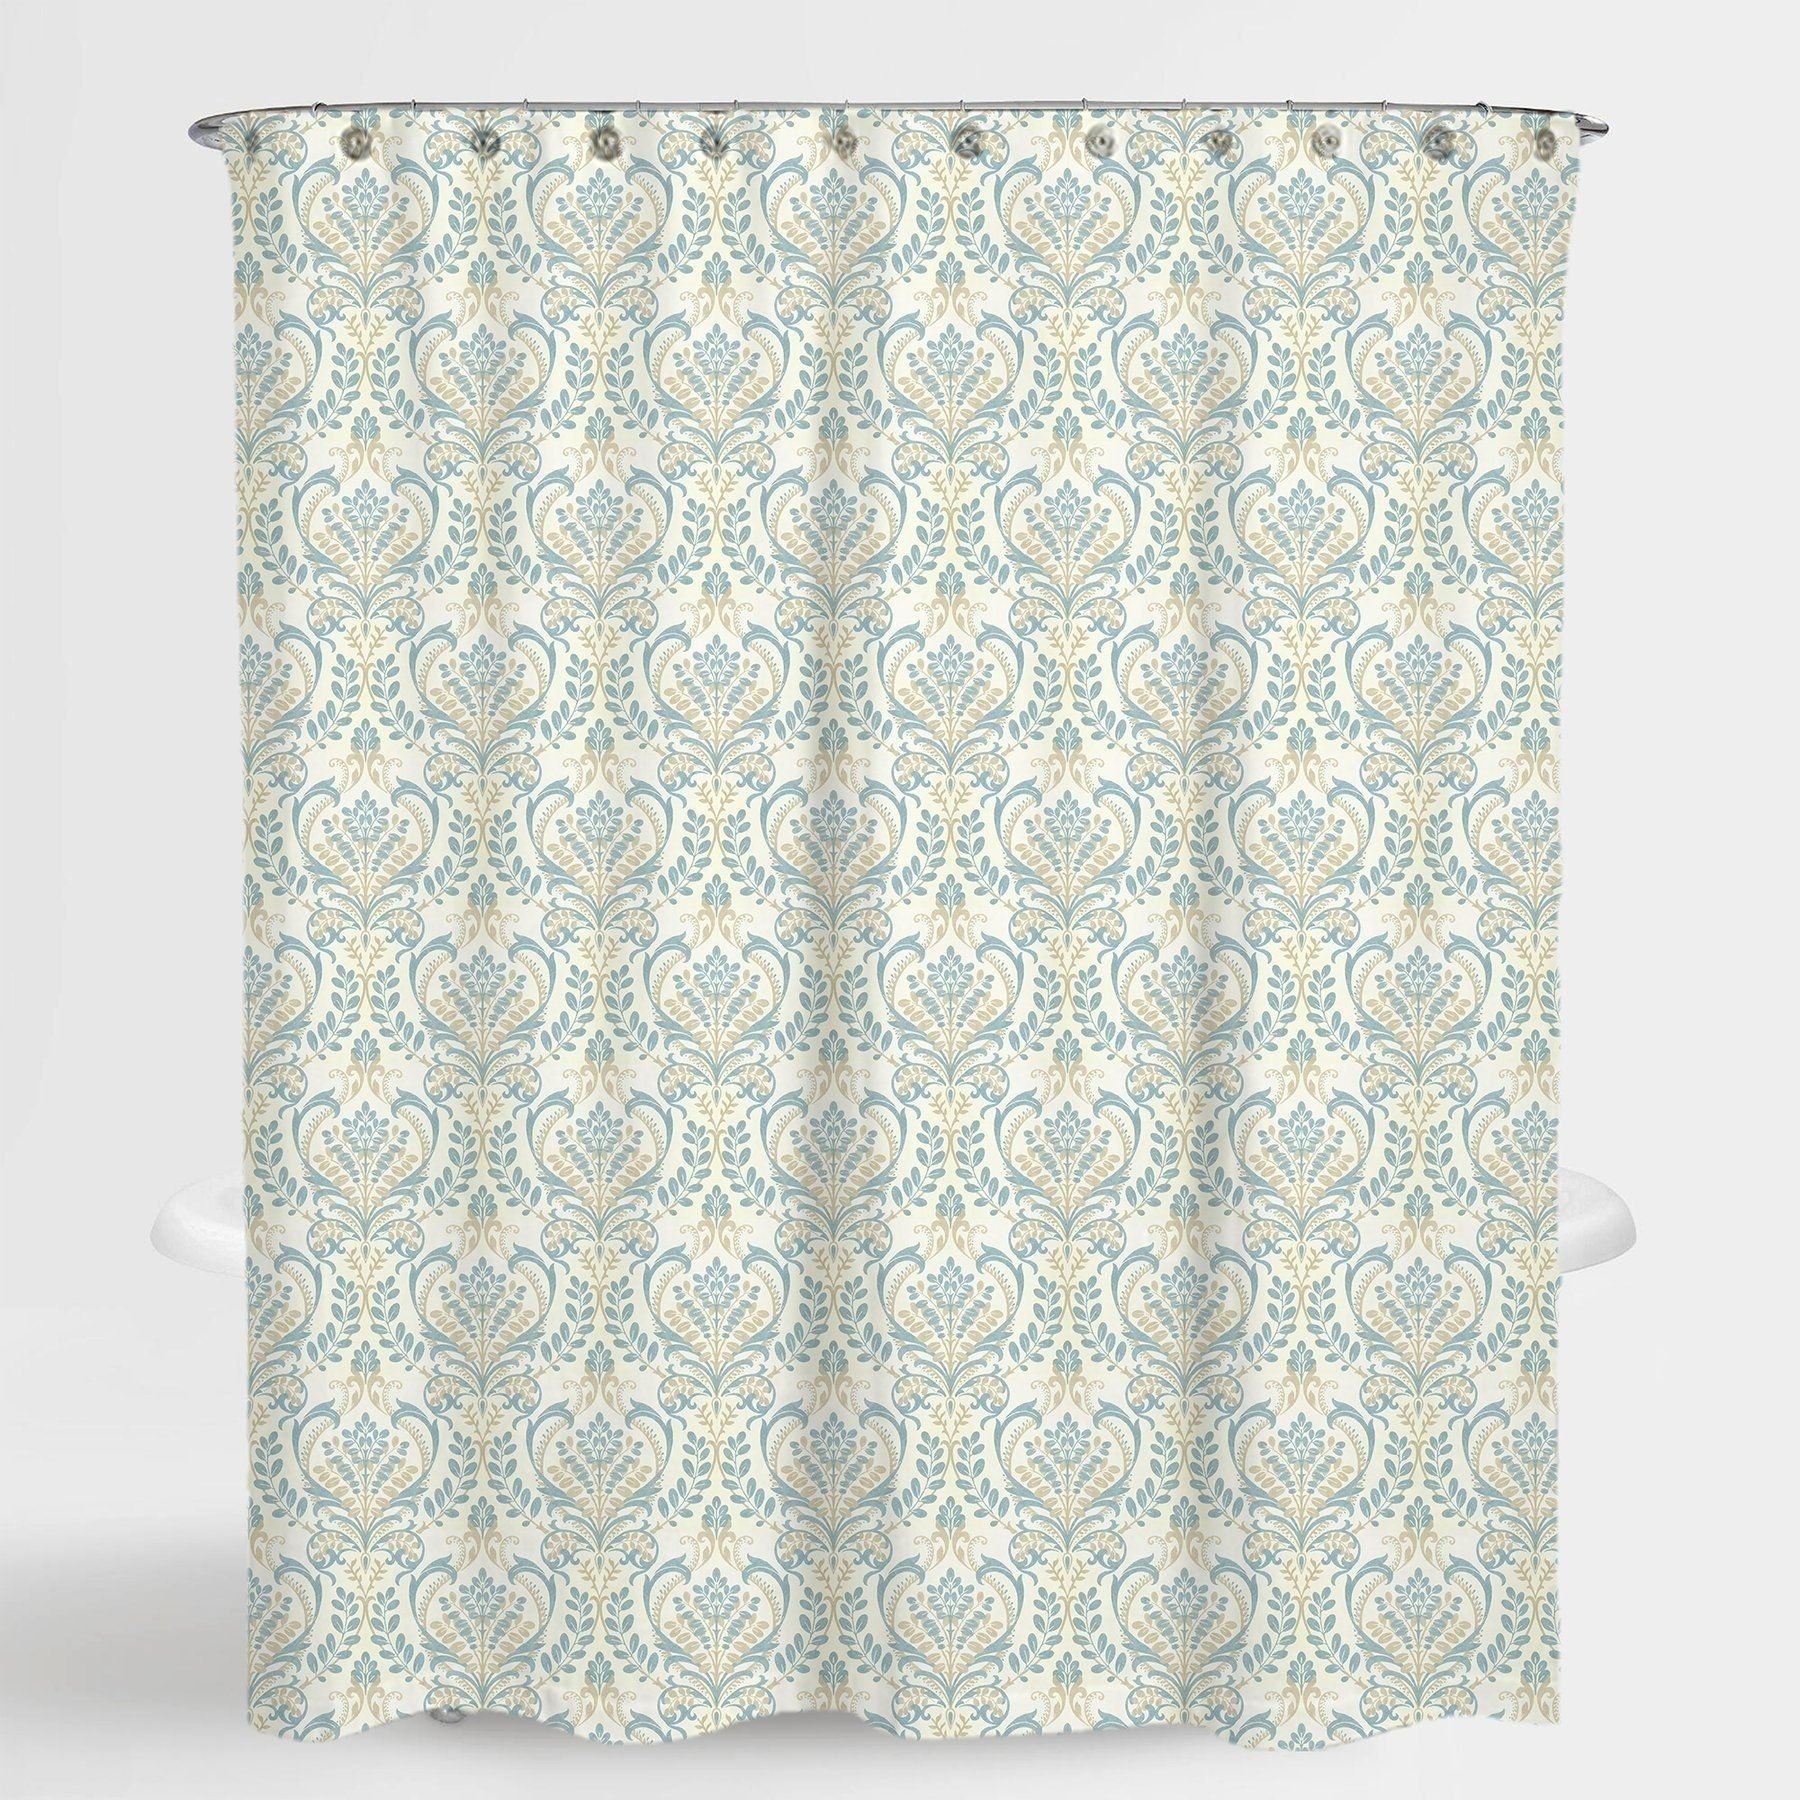 Damask Blue Vince Shower Water Repellent Curtain 72 X72 Free 12 Piece Shower Curtain Rings Fabric Shower Curtains Shower Curtain Rings Striped Shower Curtains